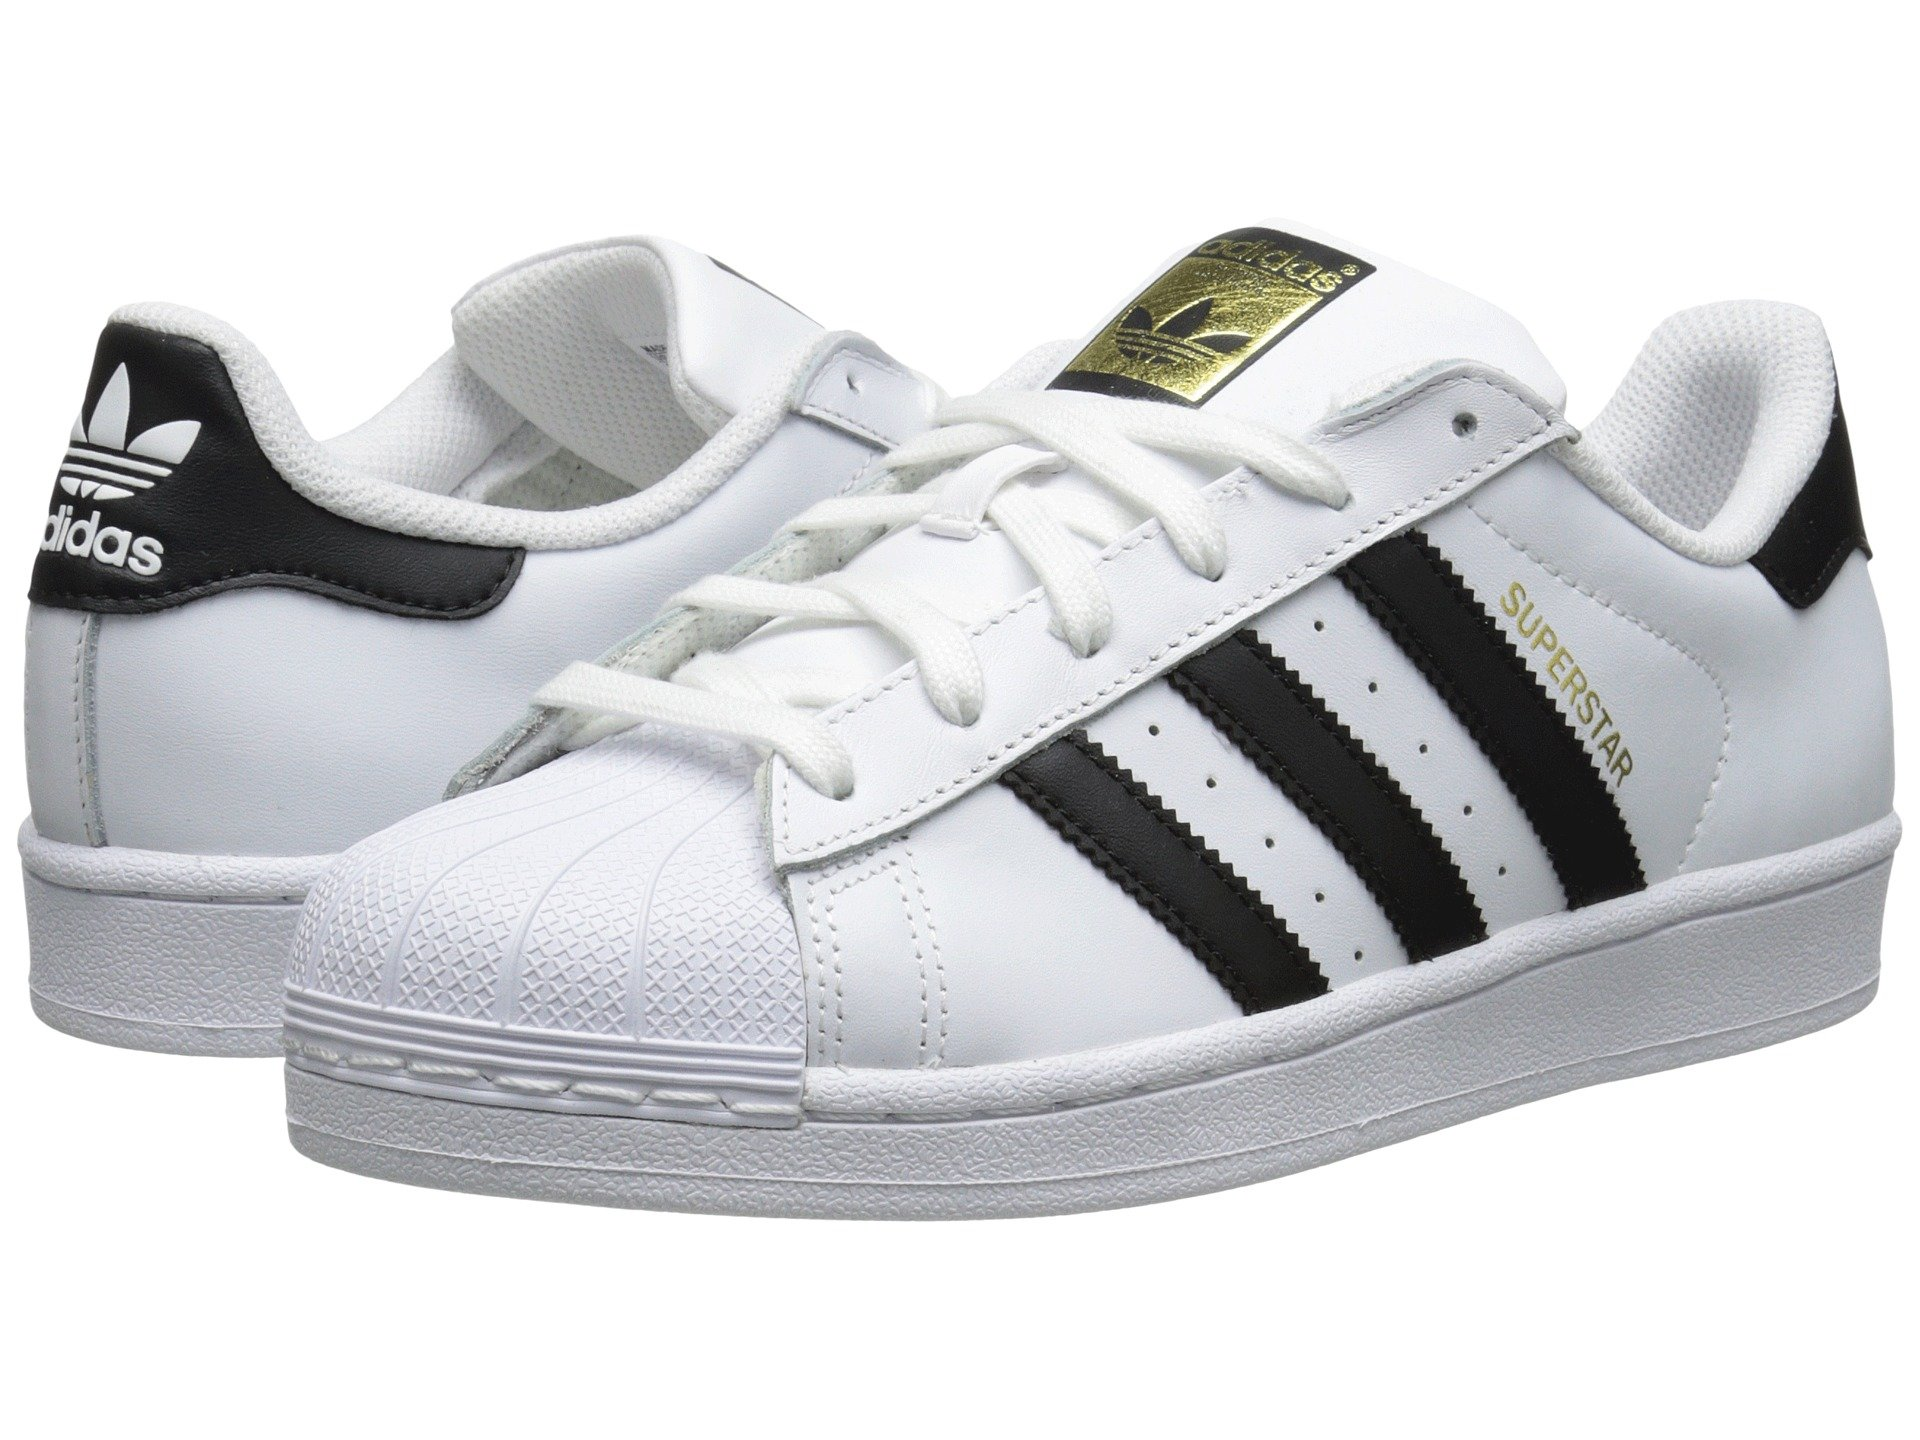 a75d4caf895 Women s adidas Originals Sneakers   Athletic Shoes + FREE SHIPPING